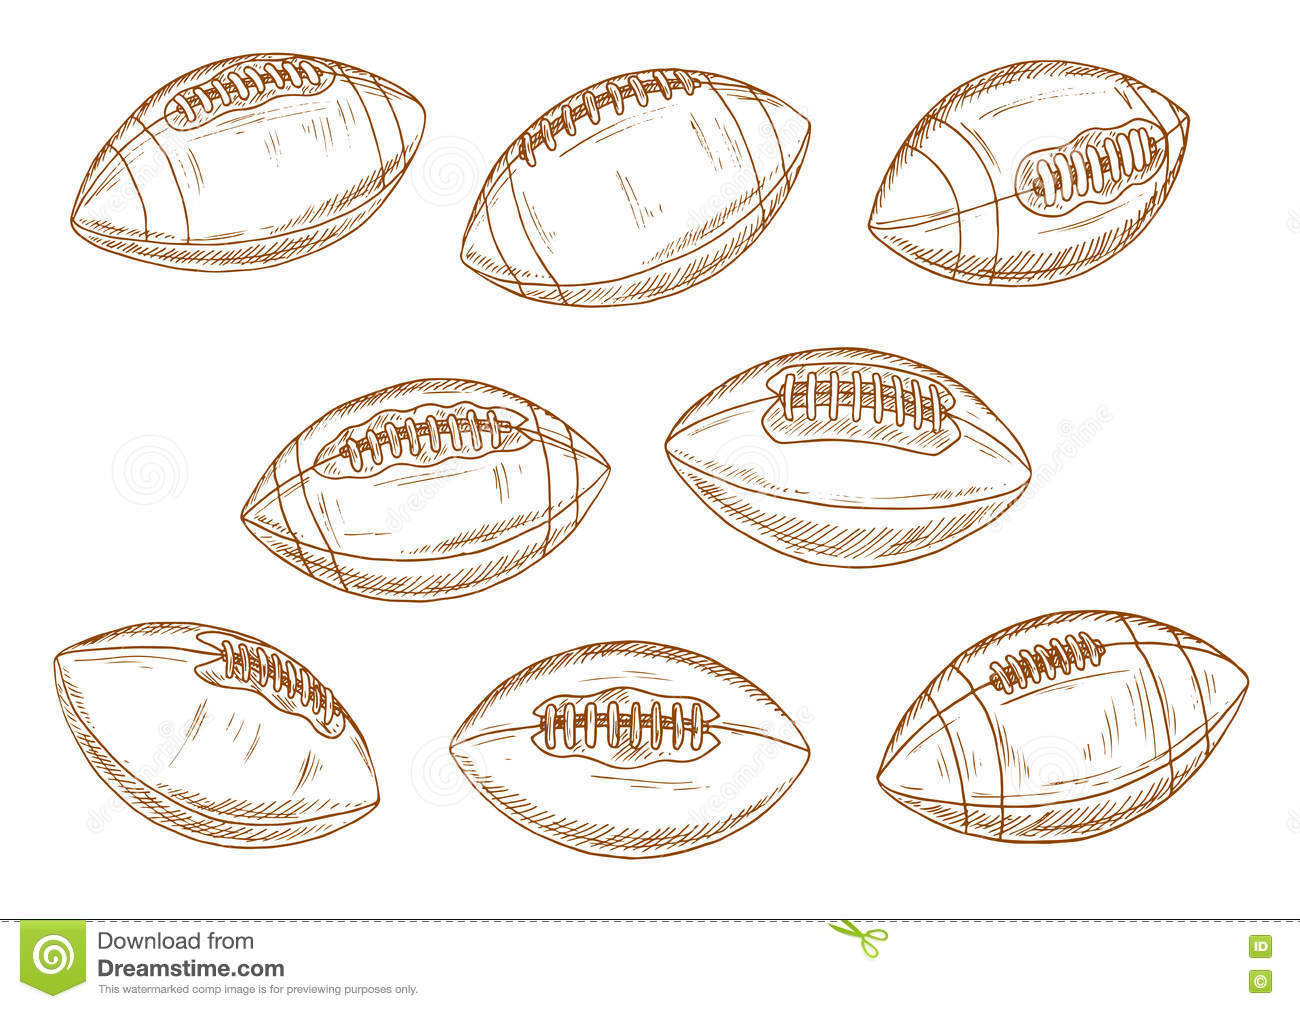 American Football Or Rugby Sports Balls Sketches Stock Vector - Image 75444373